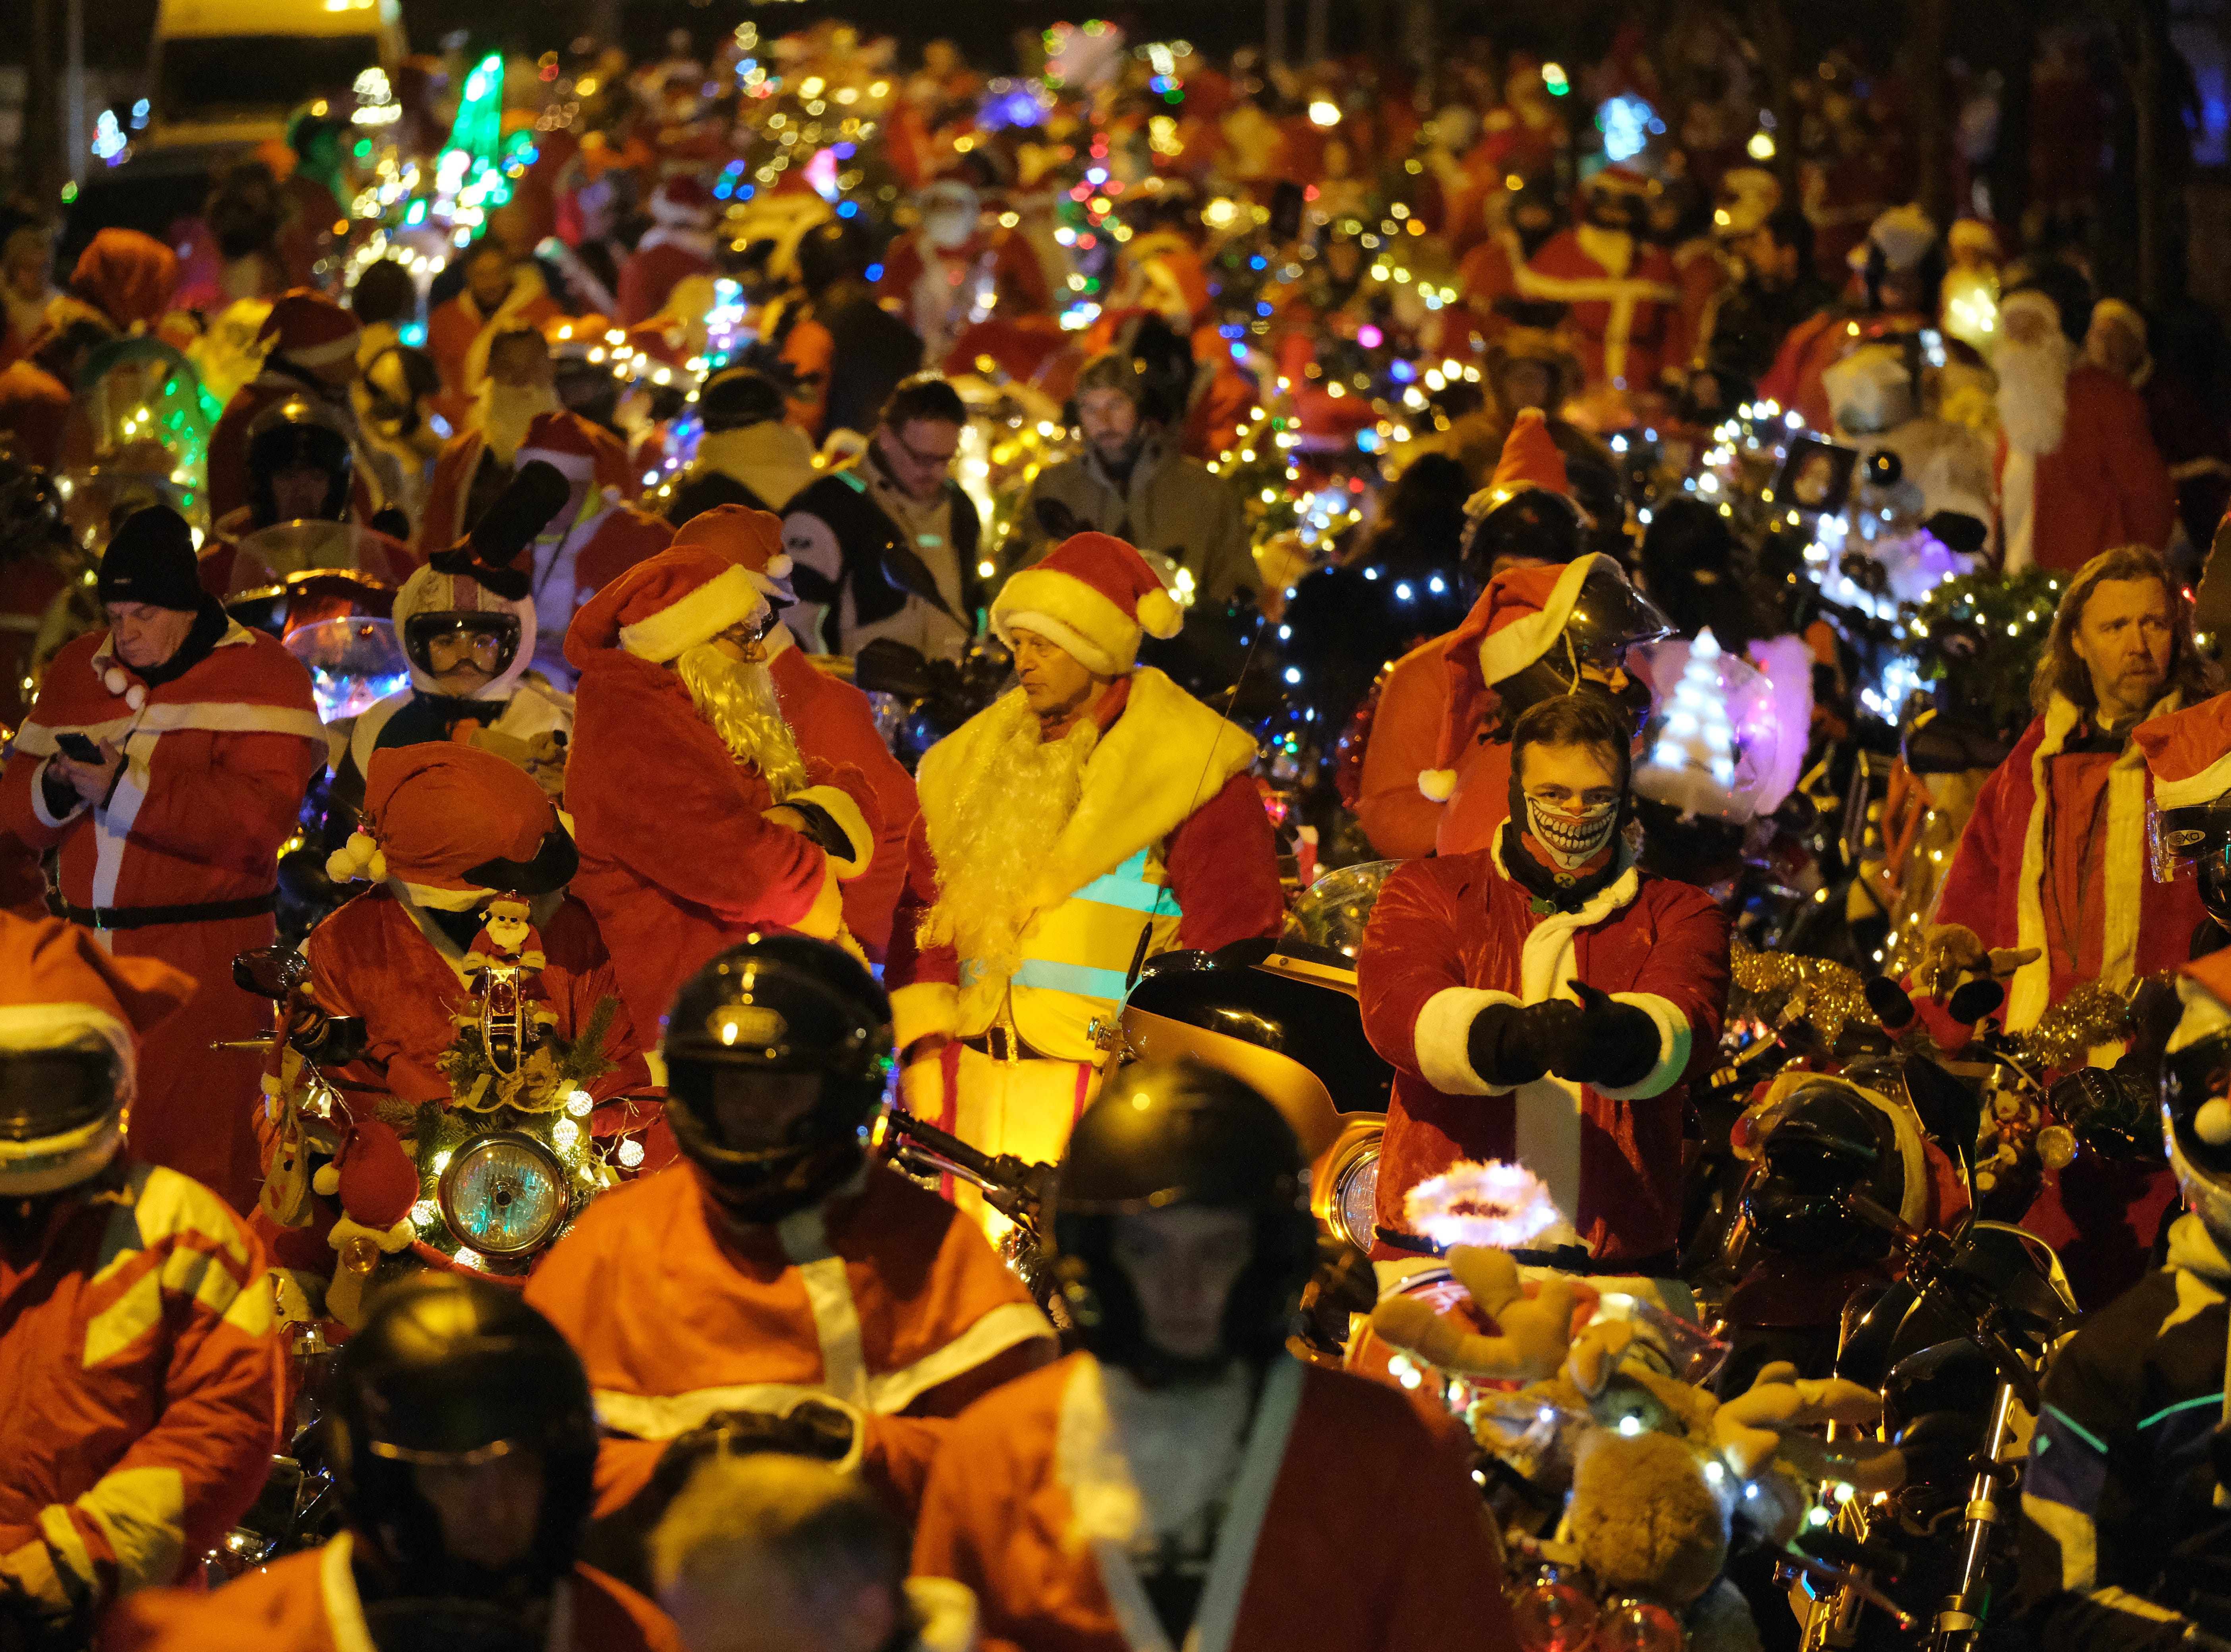 """Motorcycle enthusiasts dressed as Santa Claus prepare to ride in the 21st """"Berlin Christmas Biketour"""" on Dec.15, 2018 in Berlin, Germany. Several hundred motorcyclists dressed as Santa and angels rode motorcycles decorated with Christmas lights across the city in an annual fundraiser for the needy."""